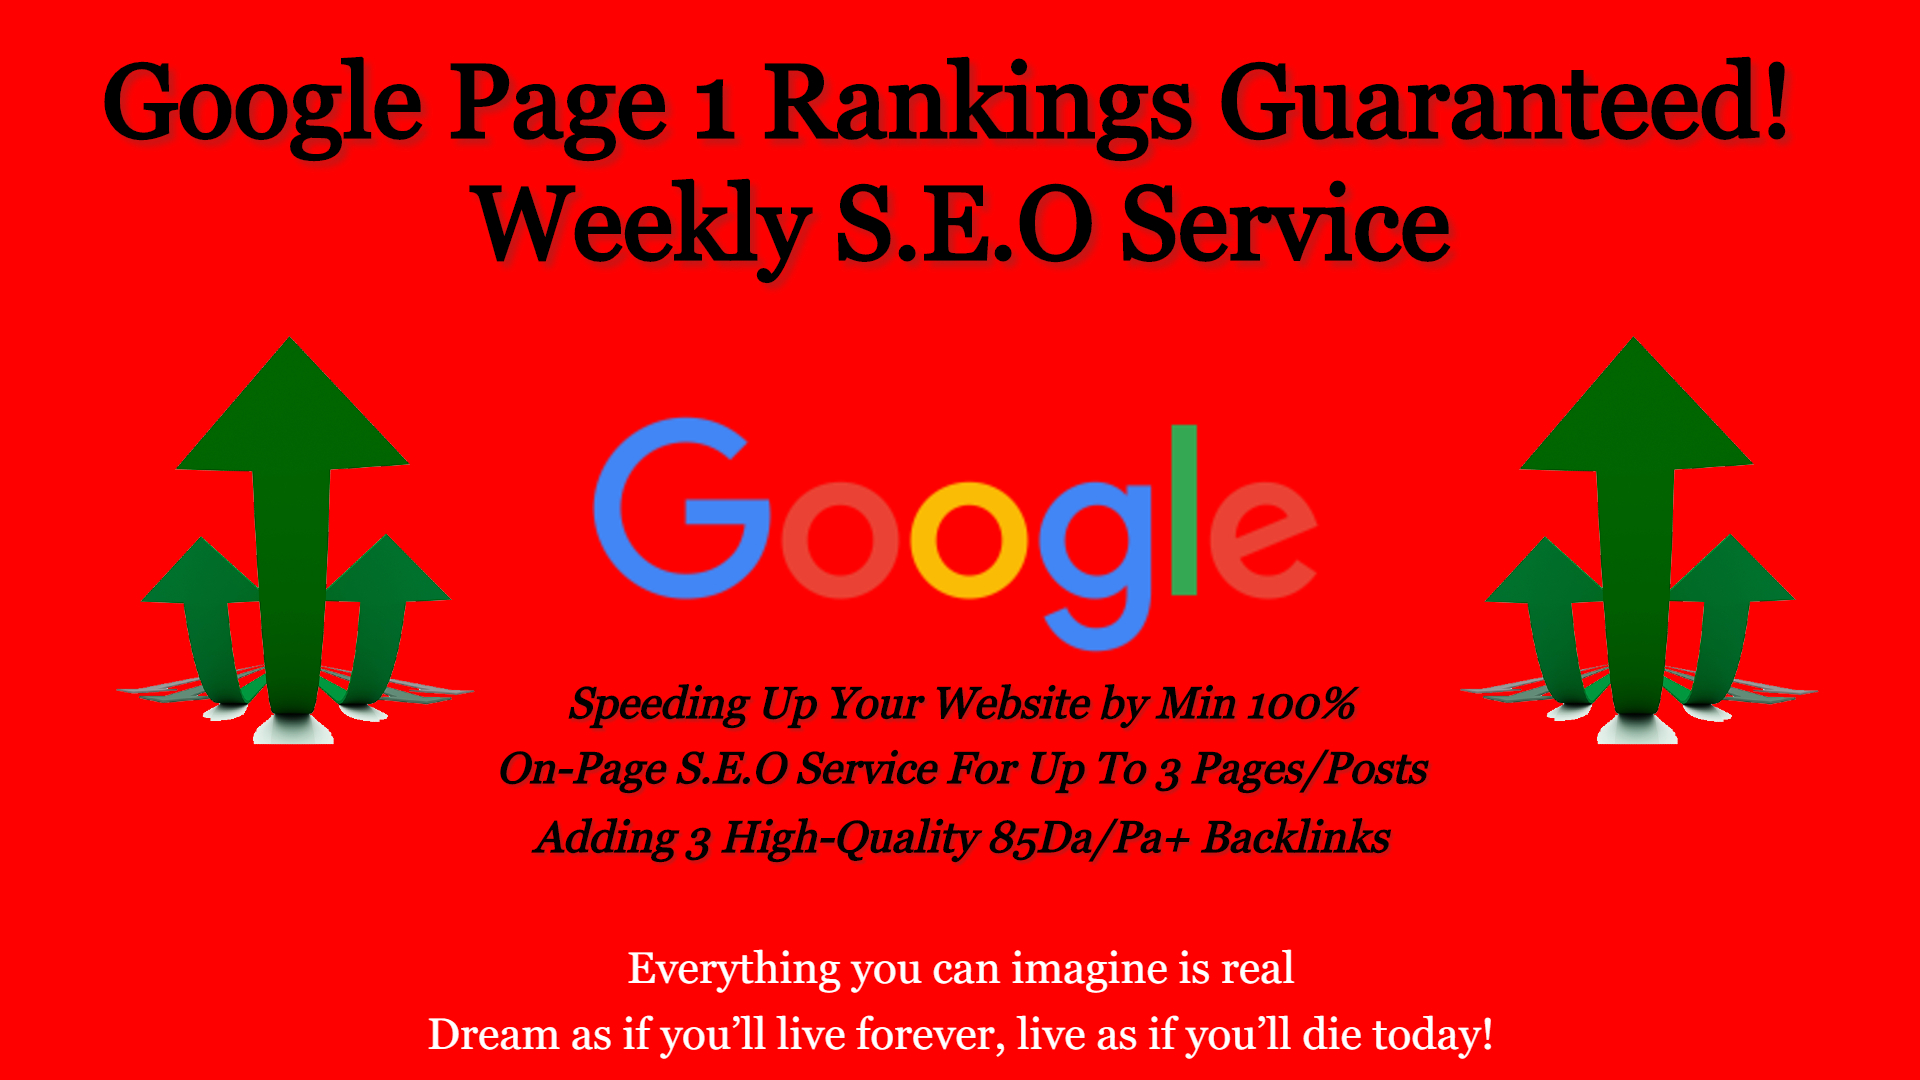 Guaranteed Google Page 1 Rankings - Weekly SEO Service